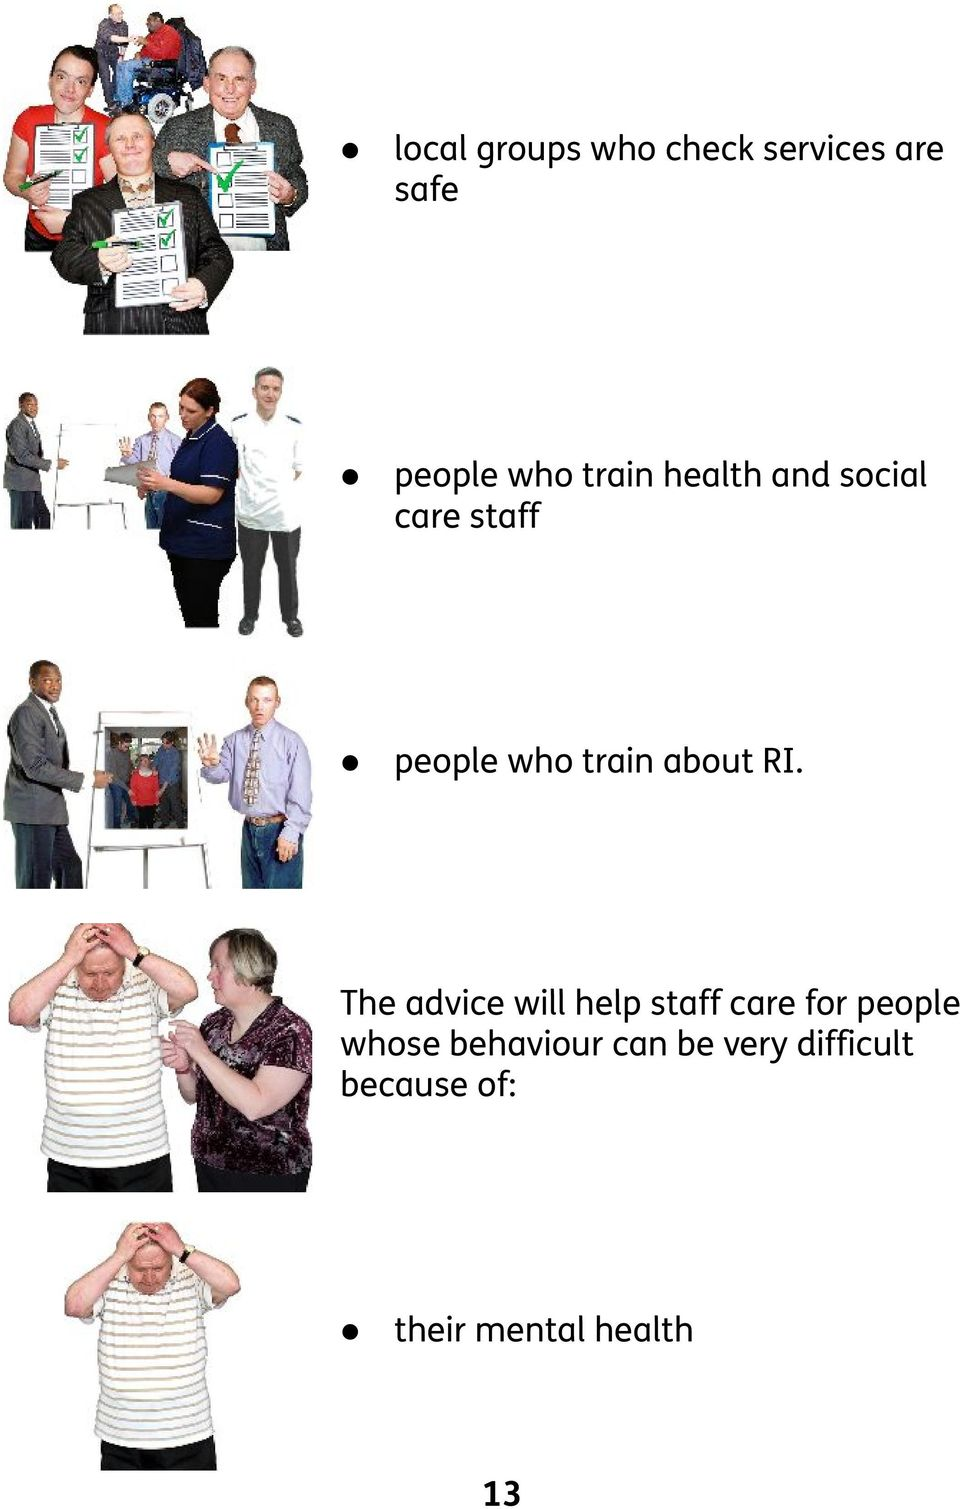 The advice will help staff care for people whose